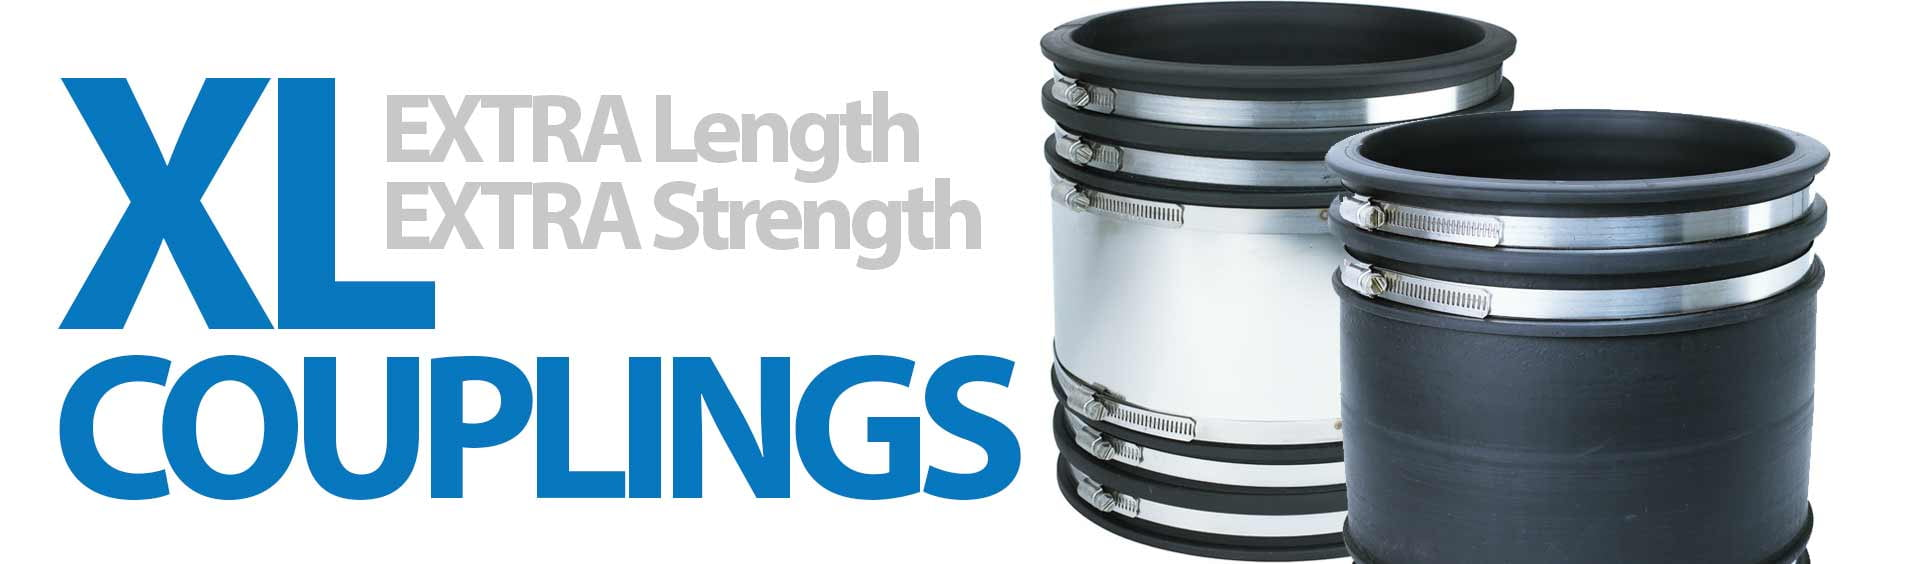 Fernco XL Couplings - Extra Length for Extra Strength